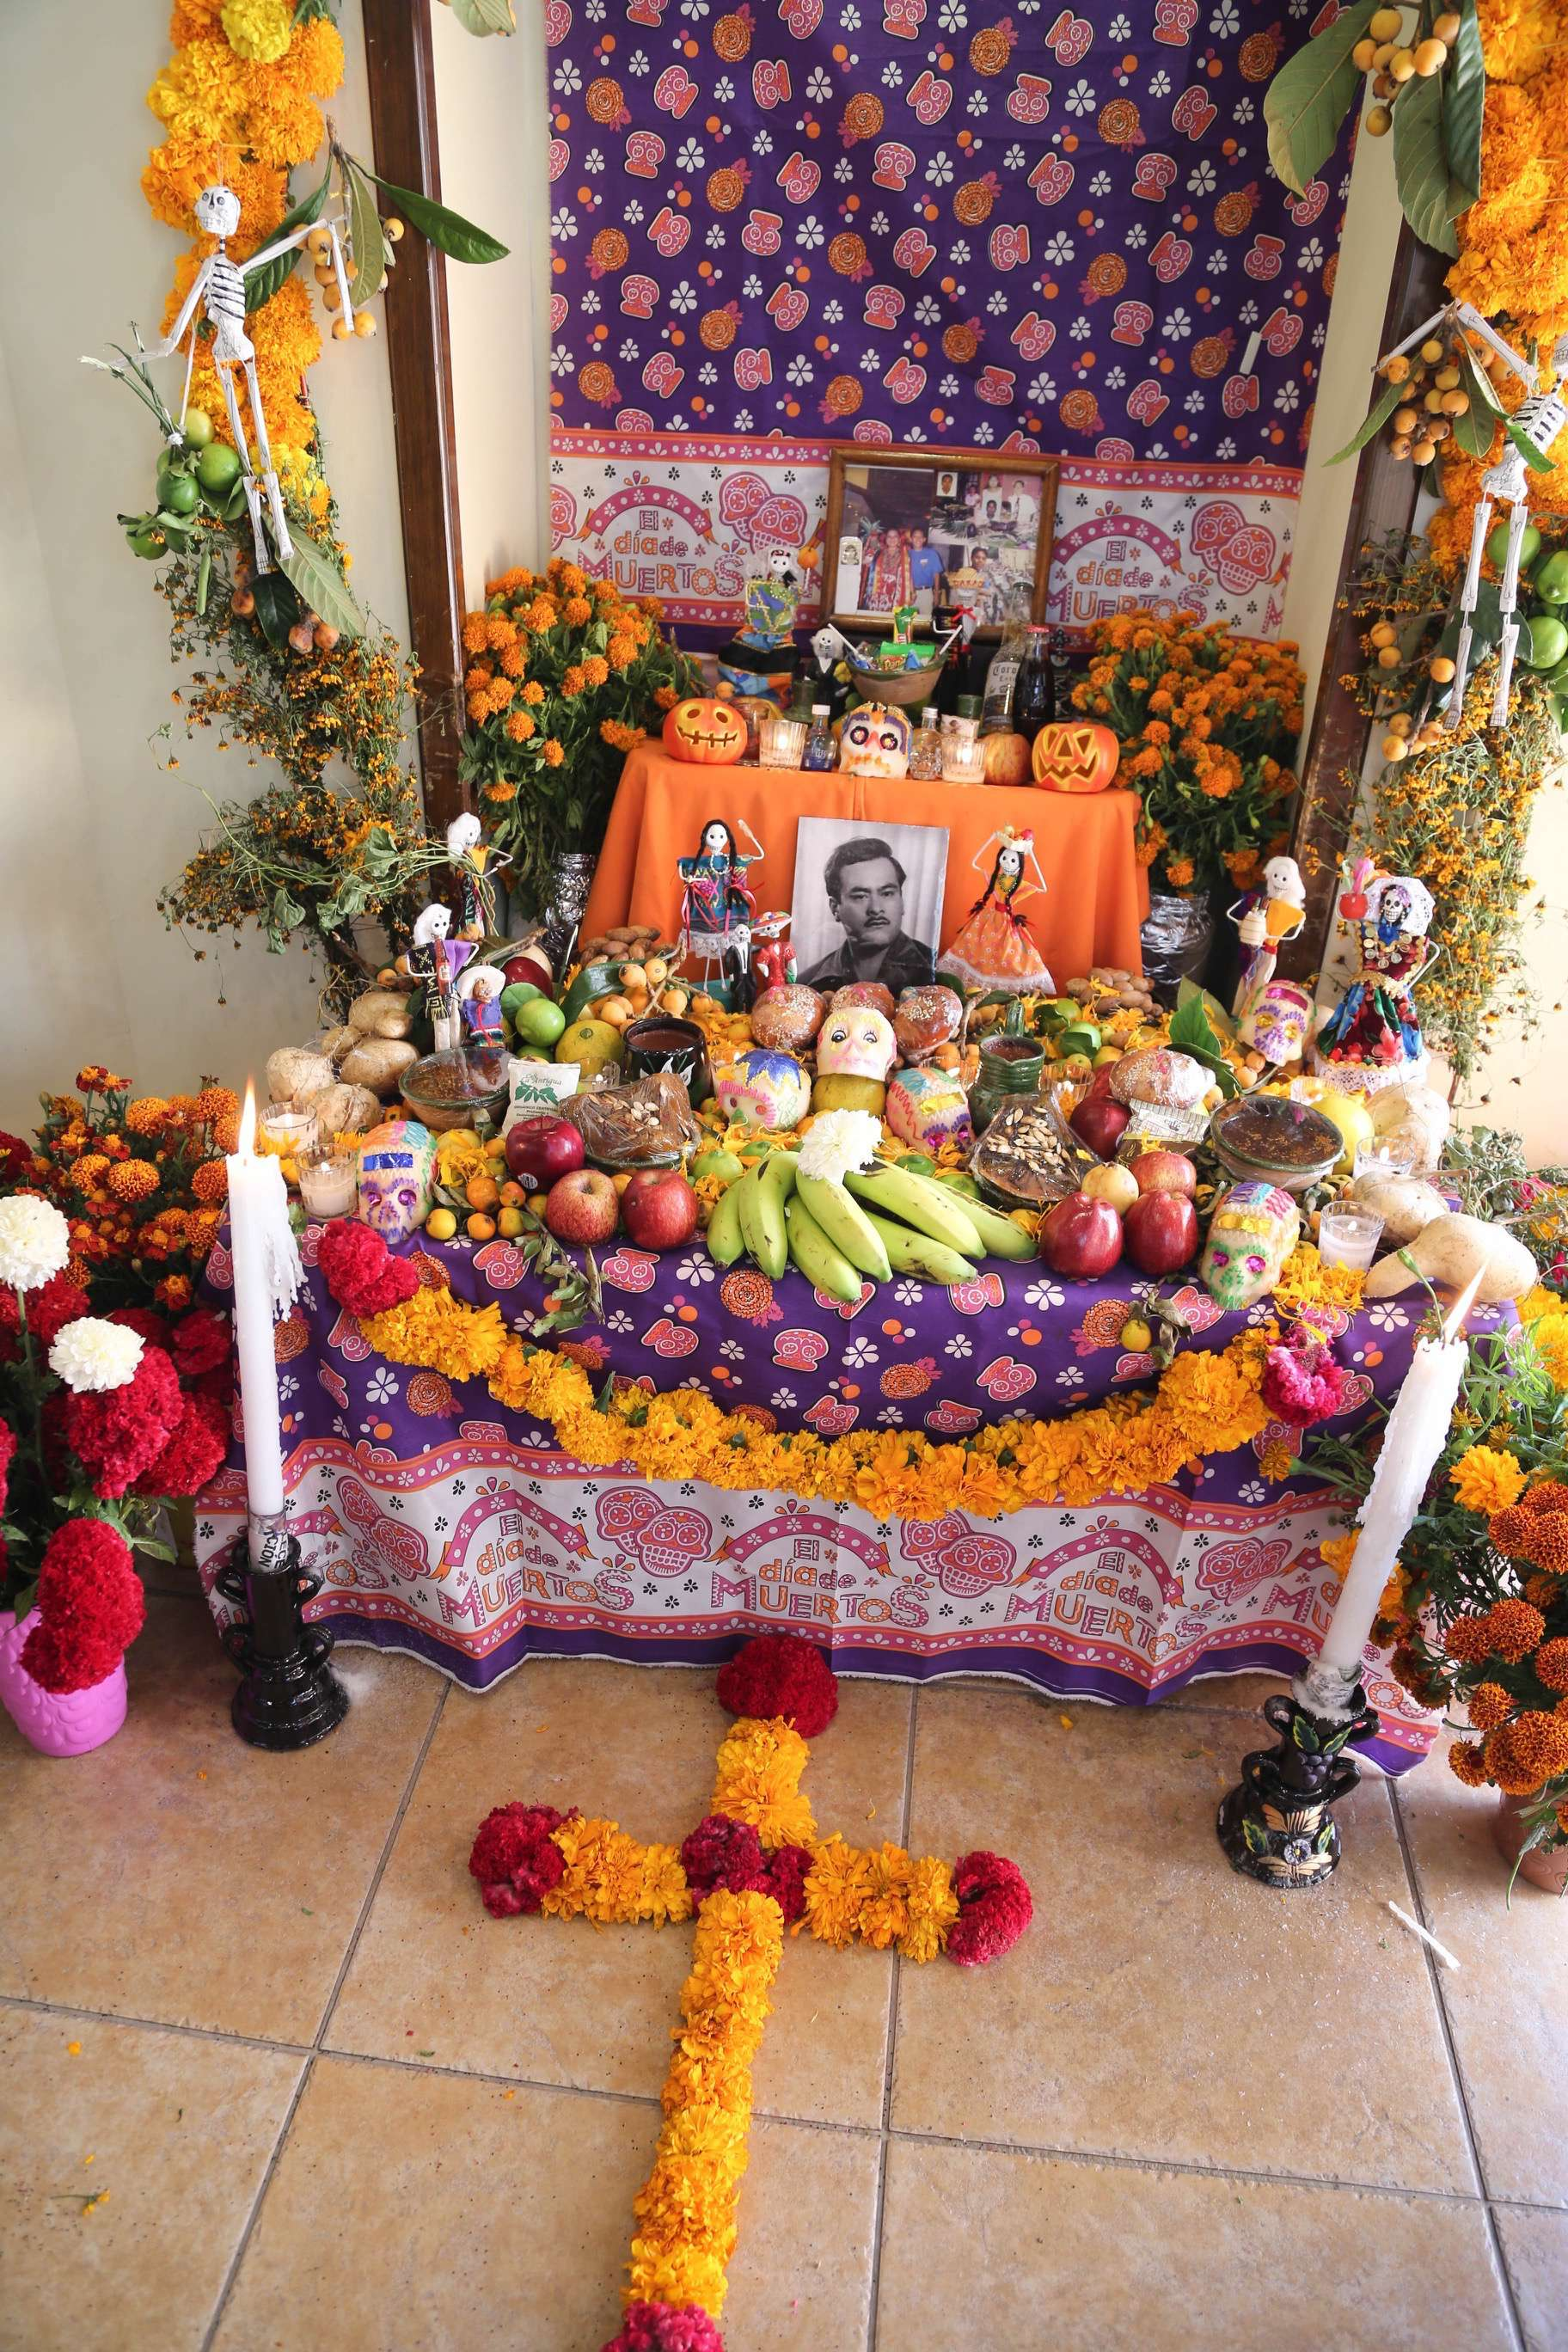 Every altar has its own personality and they can be found almost anywhere one looks when in Oaxaca during Dia de los Muertos.